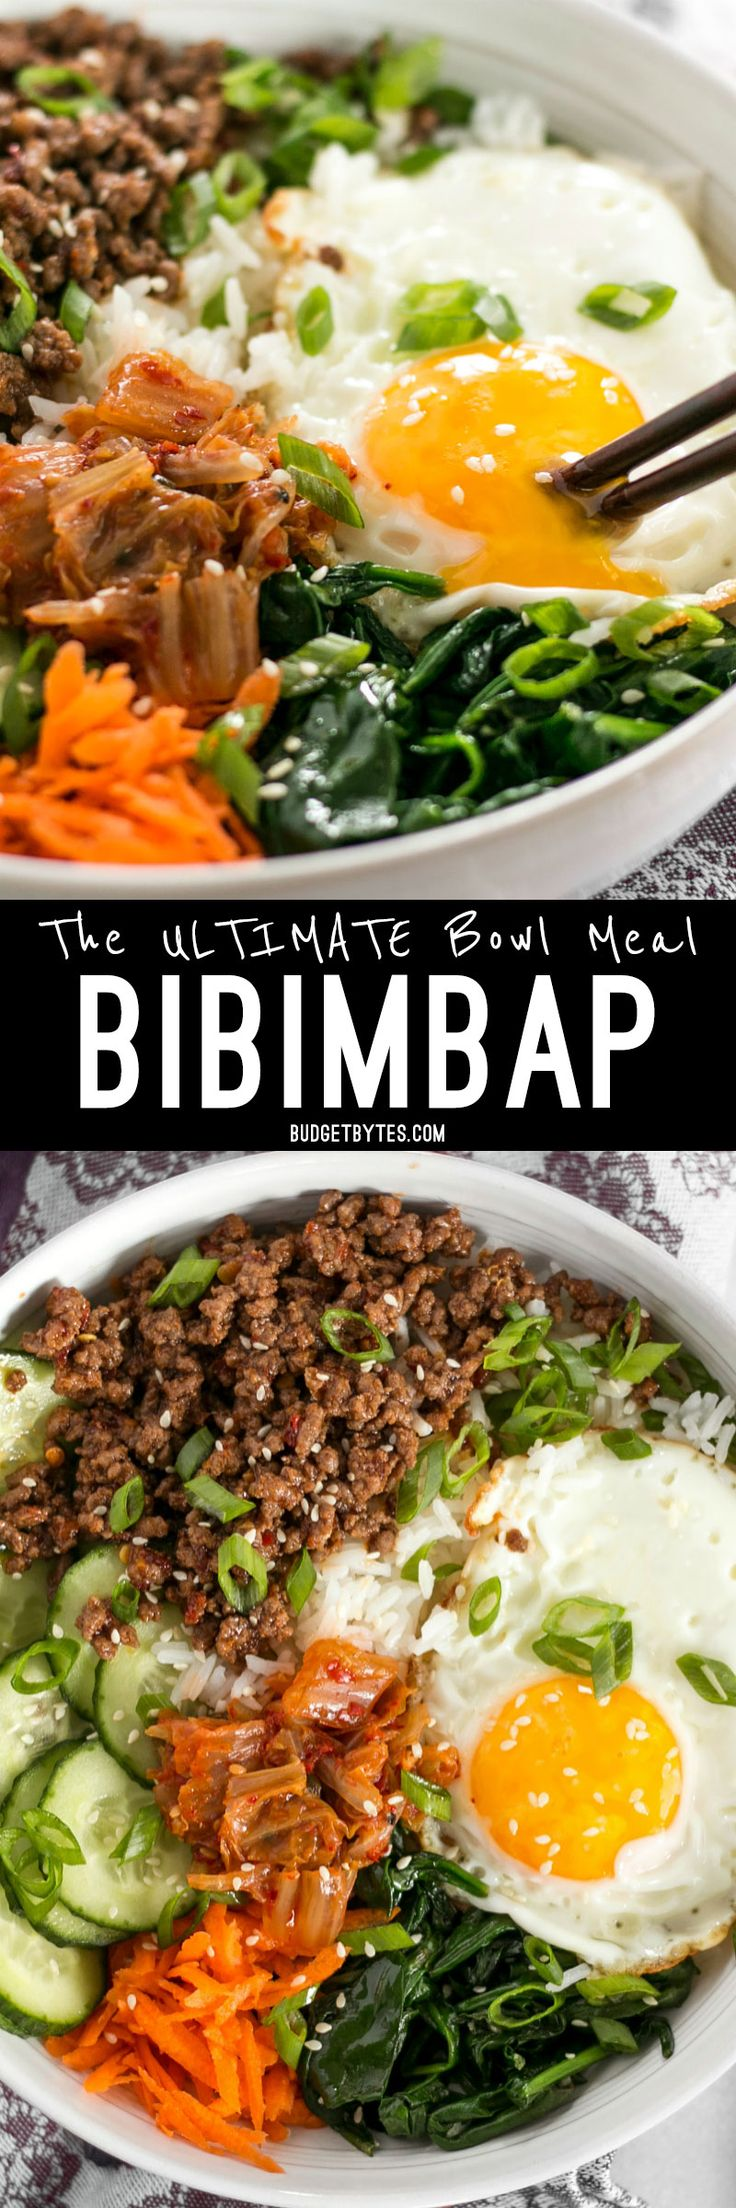 Bibimbap is the ultimate bowl meal with plenty of color, flavor, and texture to keep your taste buds happy and your stomach full. BudgetBytes.com